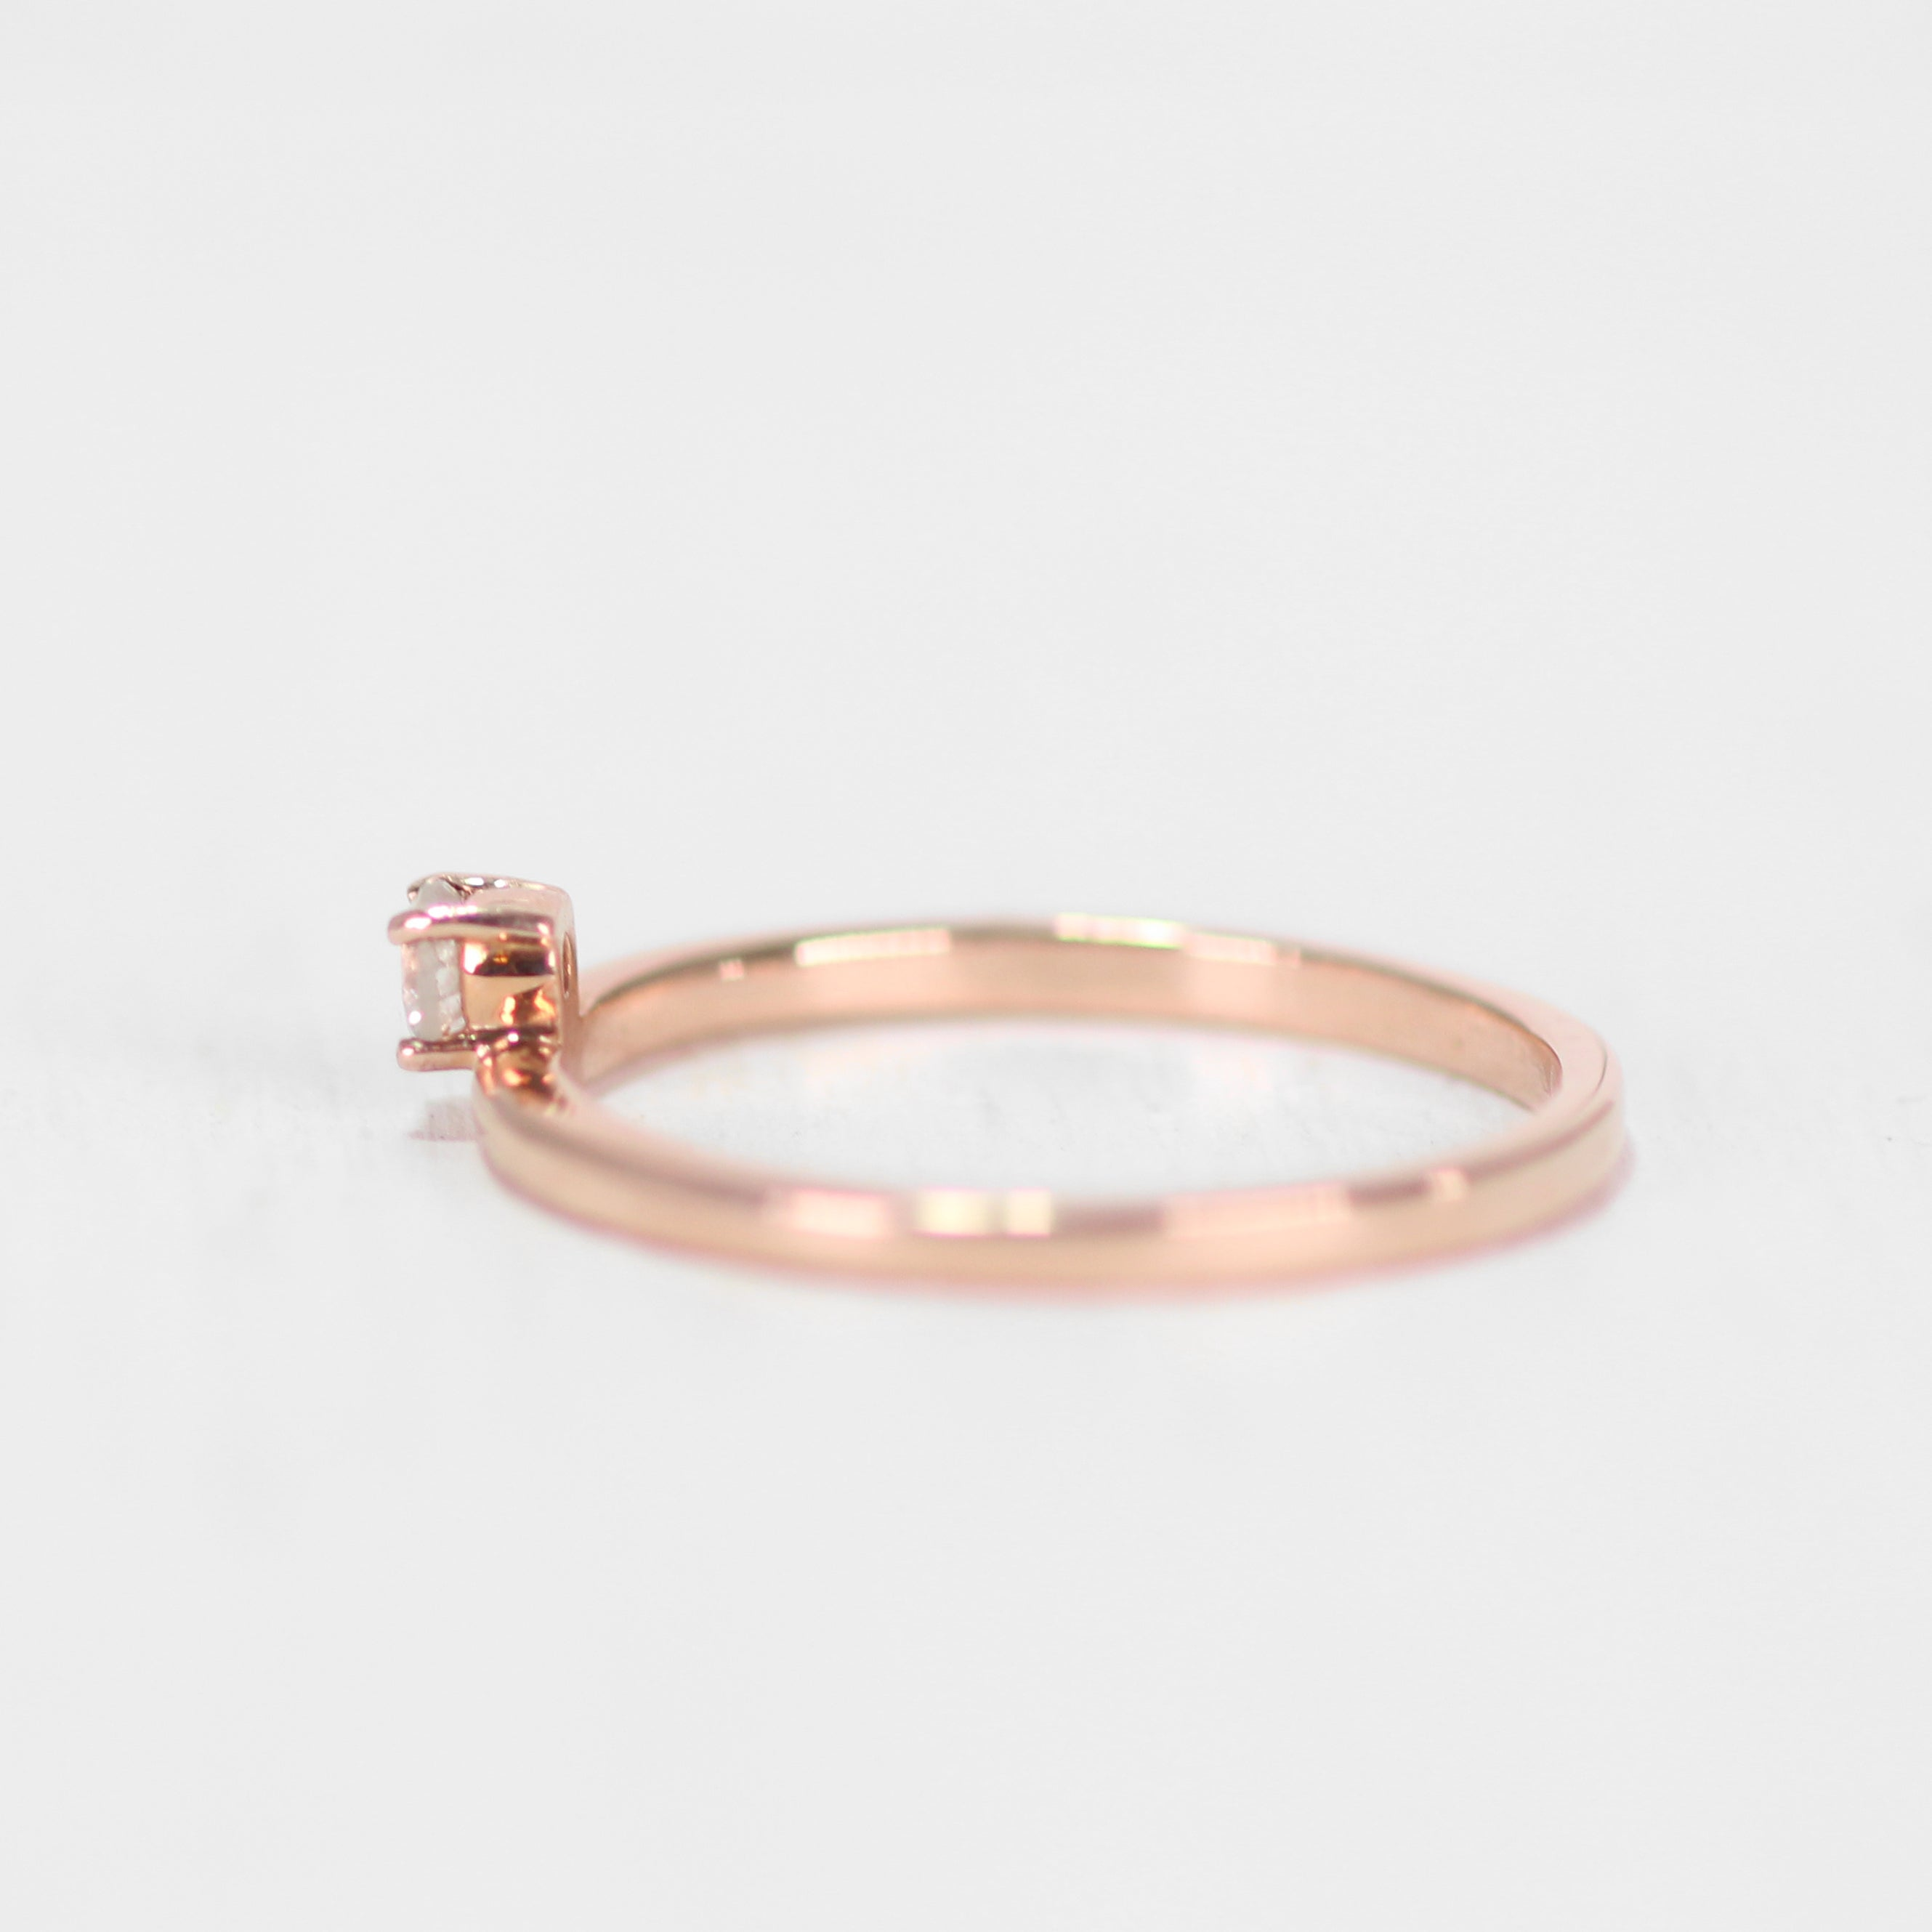 Najeal Ring - Asymmetrical Solitaire Diamond Ring in 14k Rose Gold - Celestial Diamonds ® by Midwinter Co.